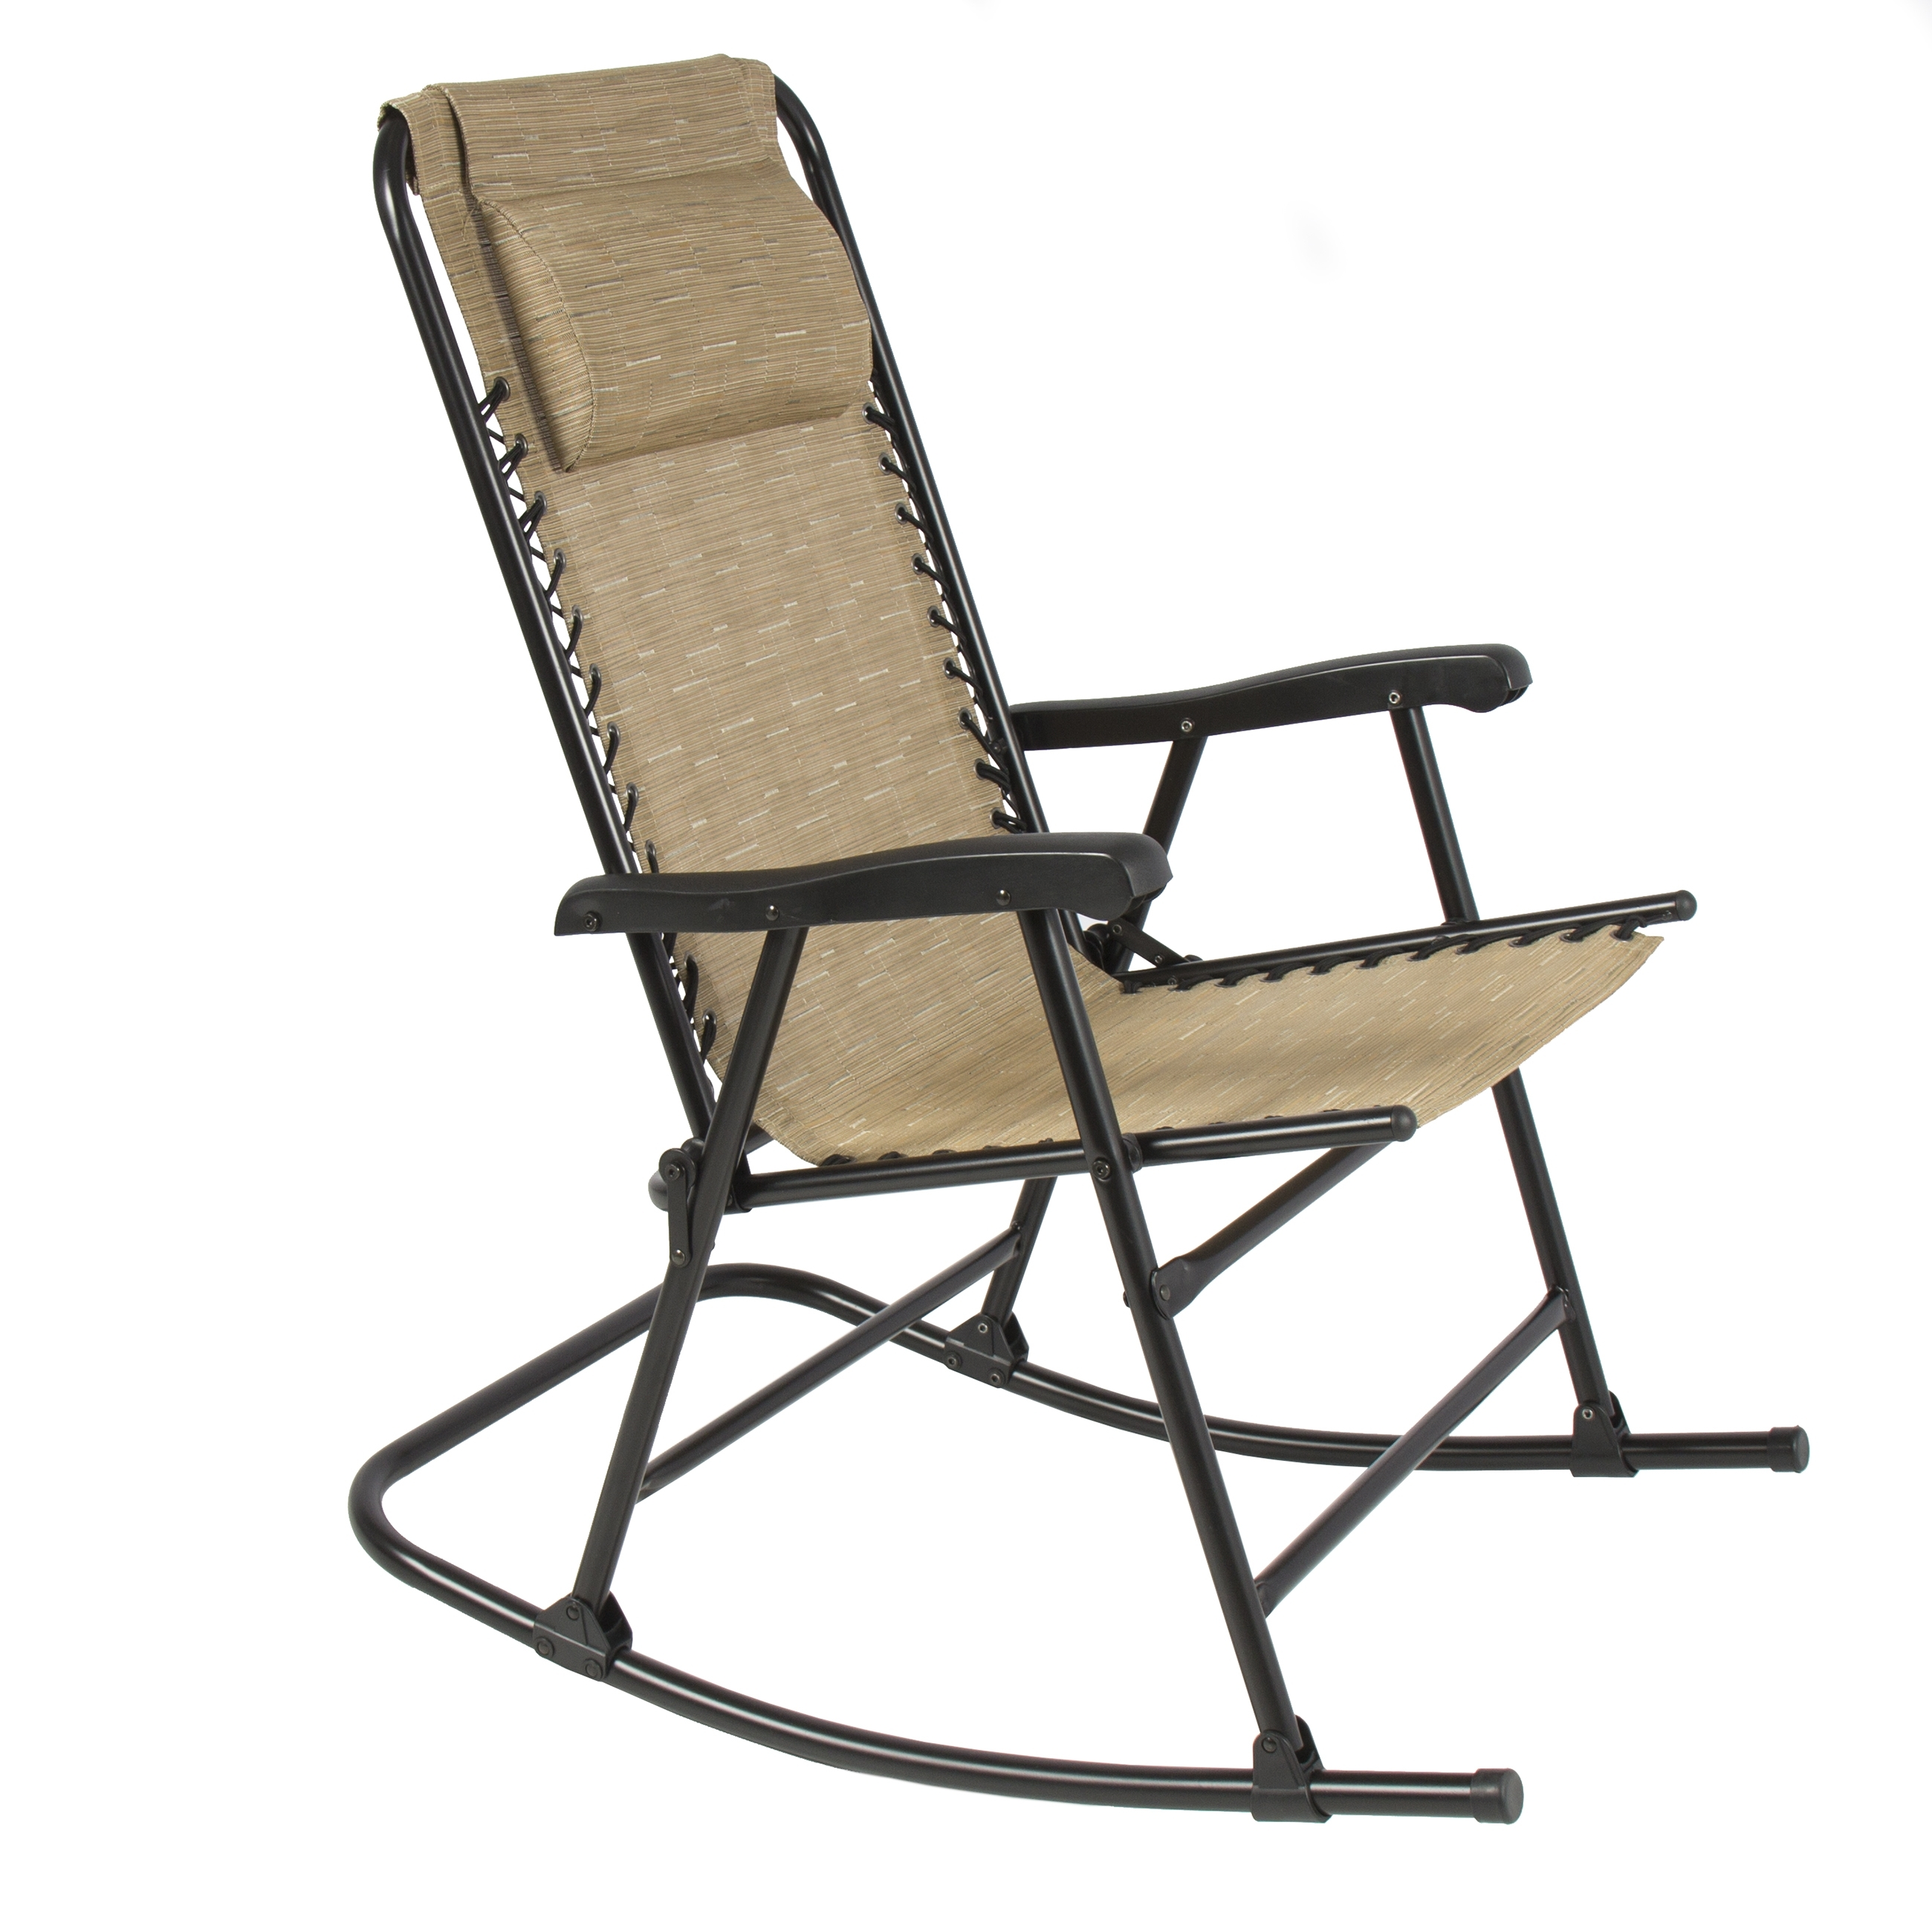 Latest Rocking Chairs At Walmart Regarding Folding Rocking Chair Foldable Rocker Outdoor Patio Furniture Beige (View 9 of 20)